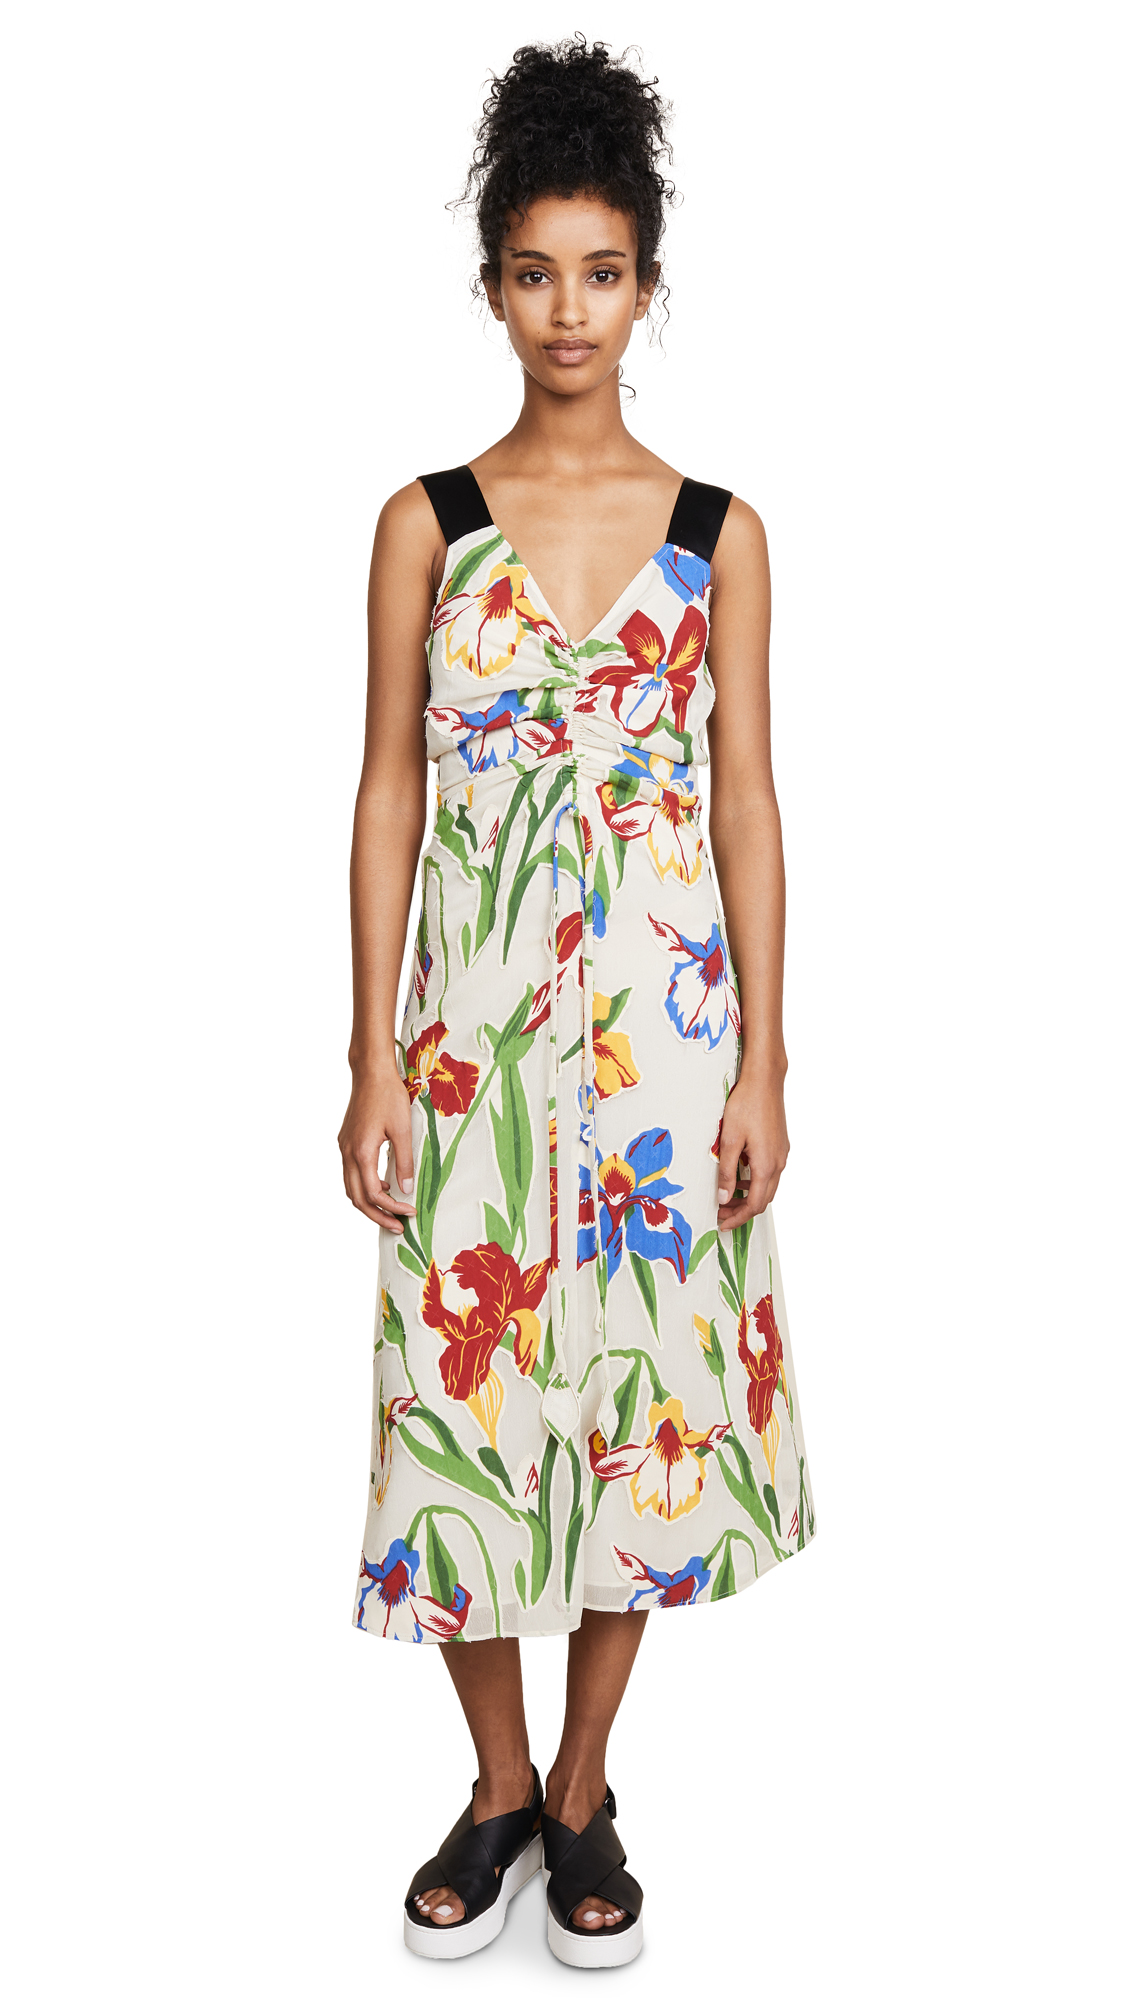 Tory Burch Clarissa Dress In Painted Iris